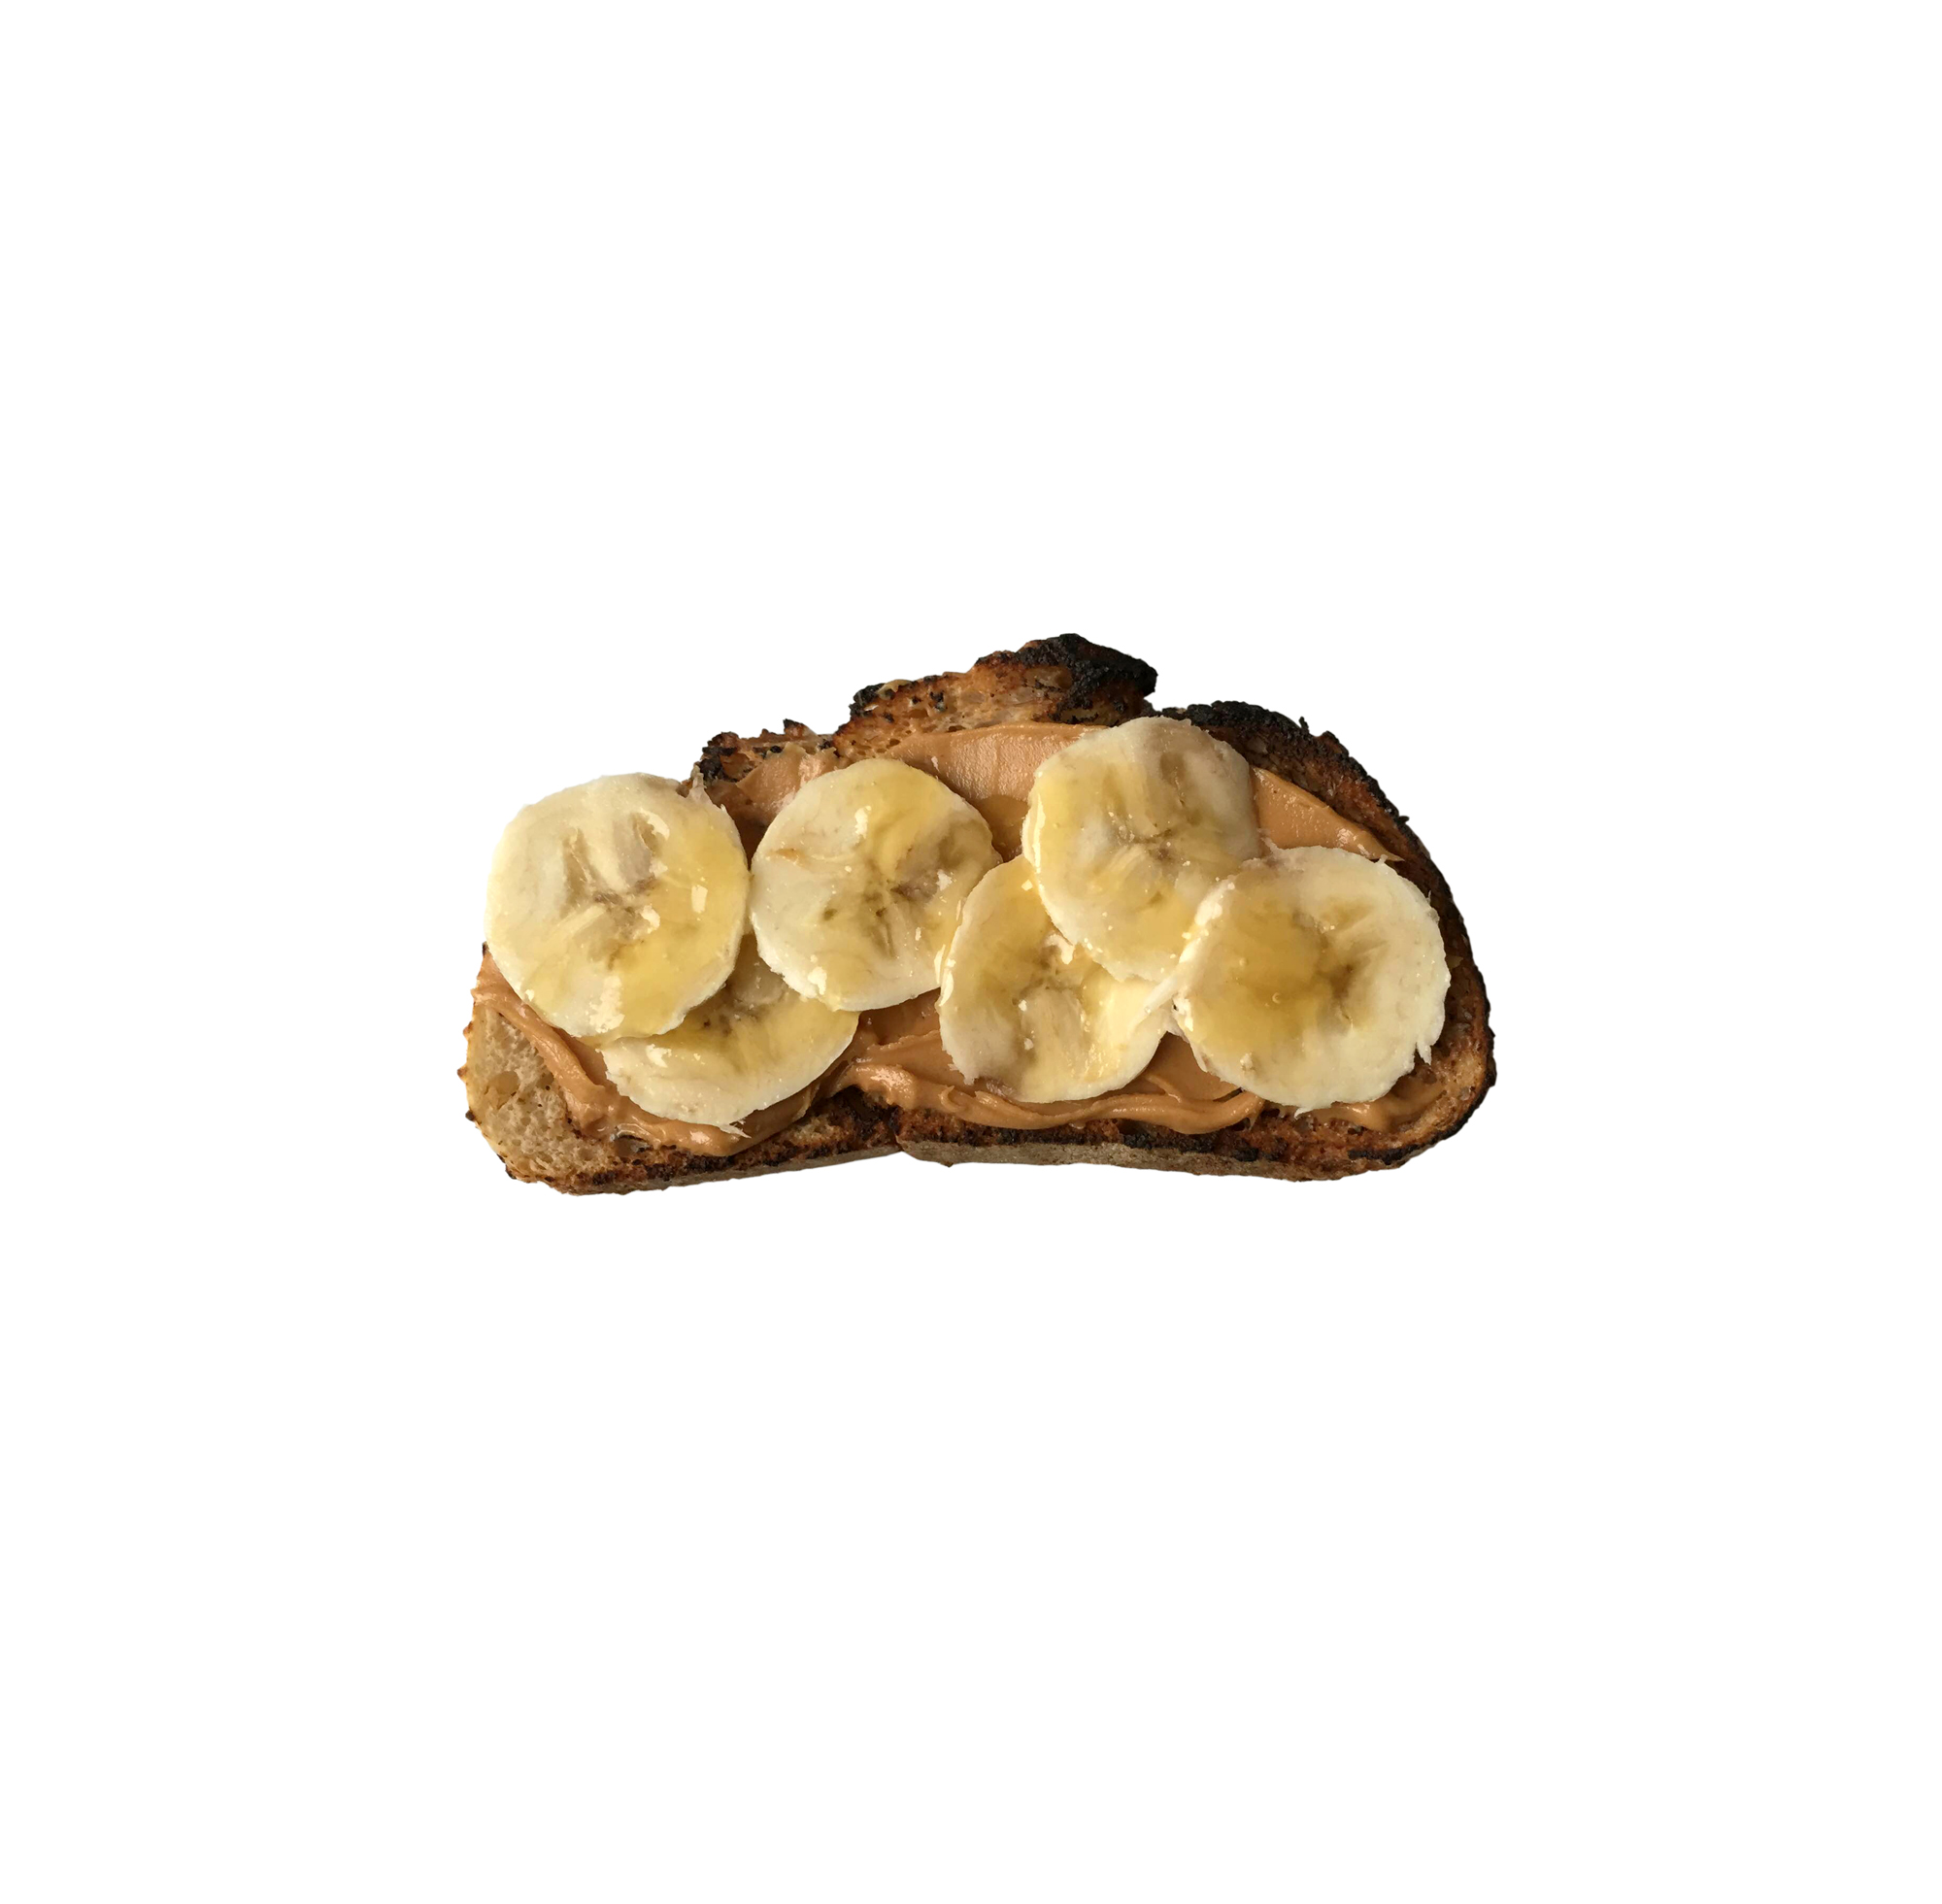 Spicy Almond Butter and Banana Toast